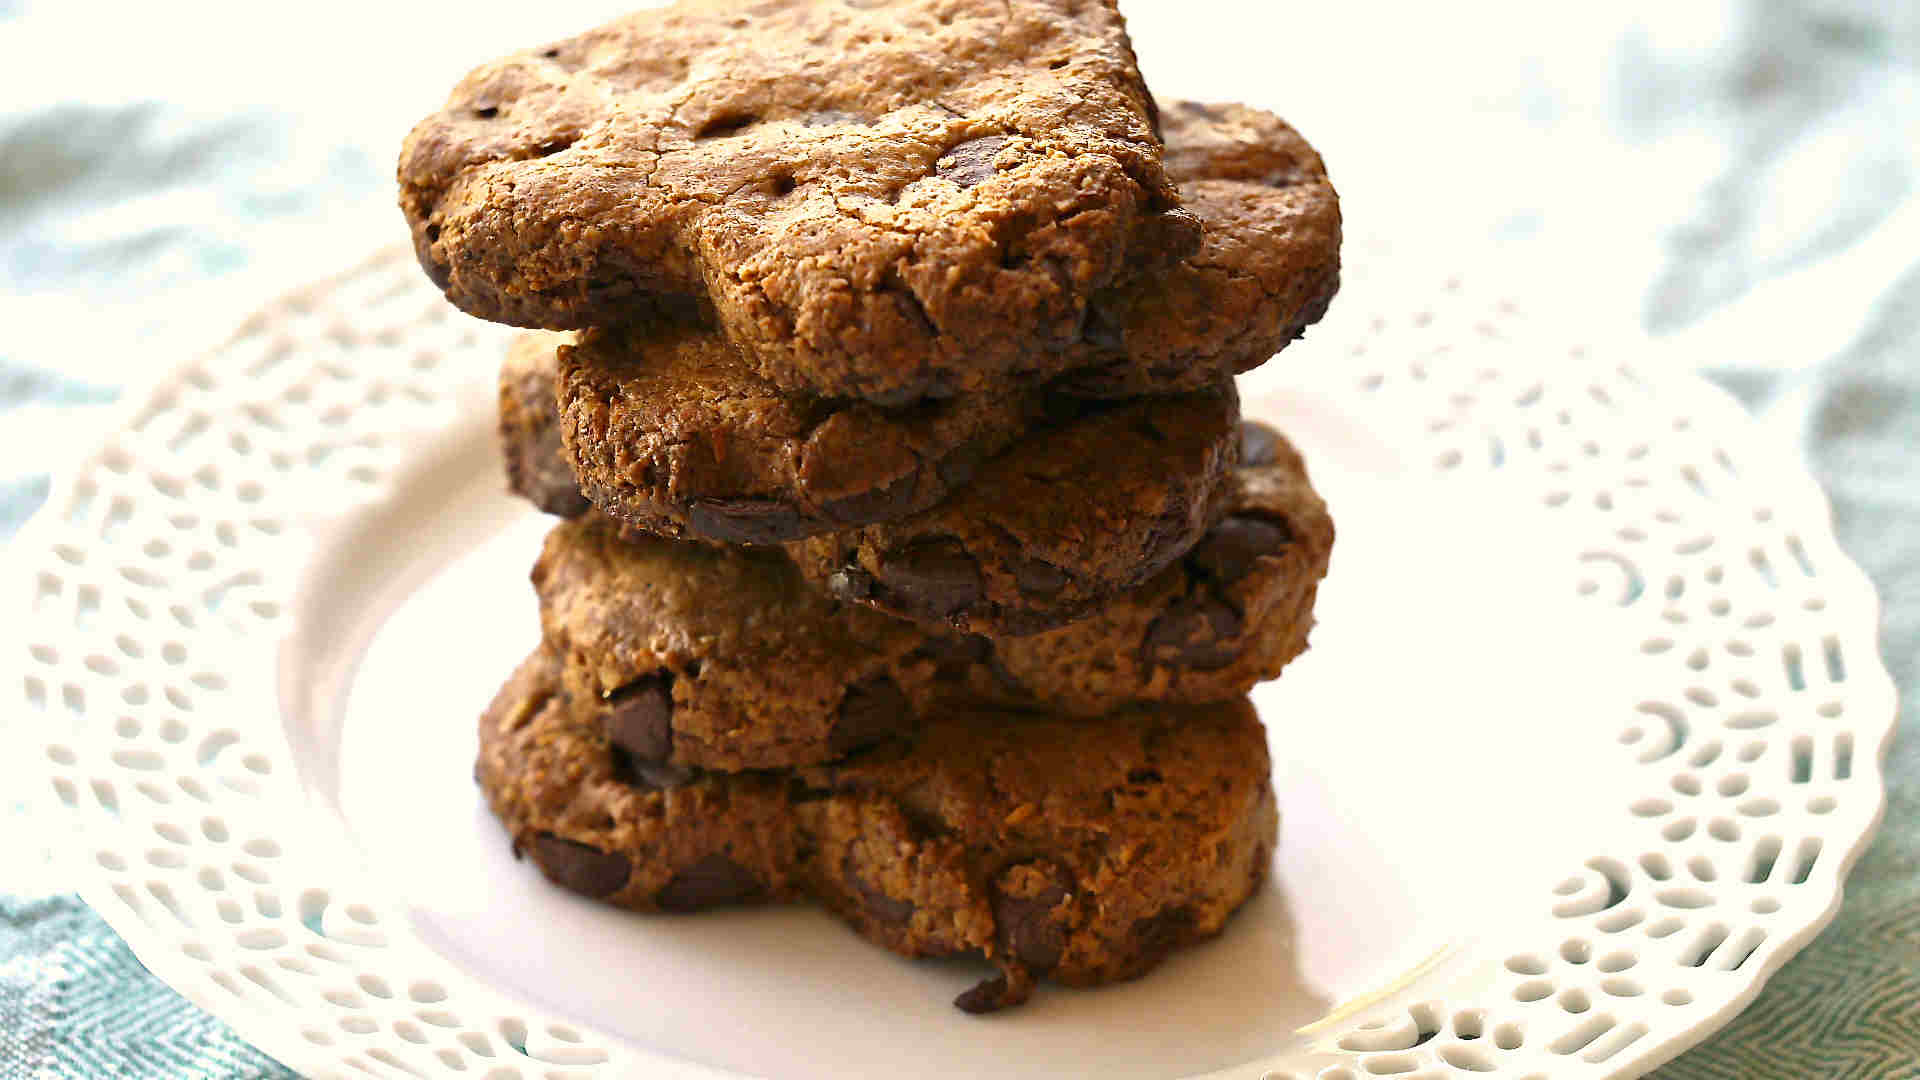 Gluten-Free Walnut Coconut Chocolate Chunkies